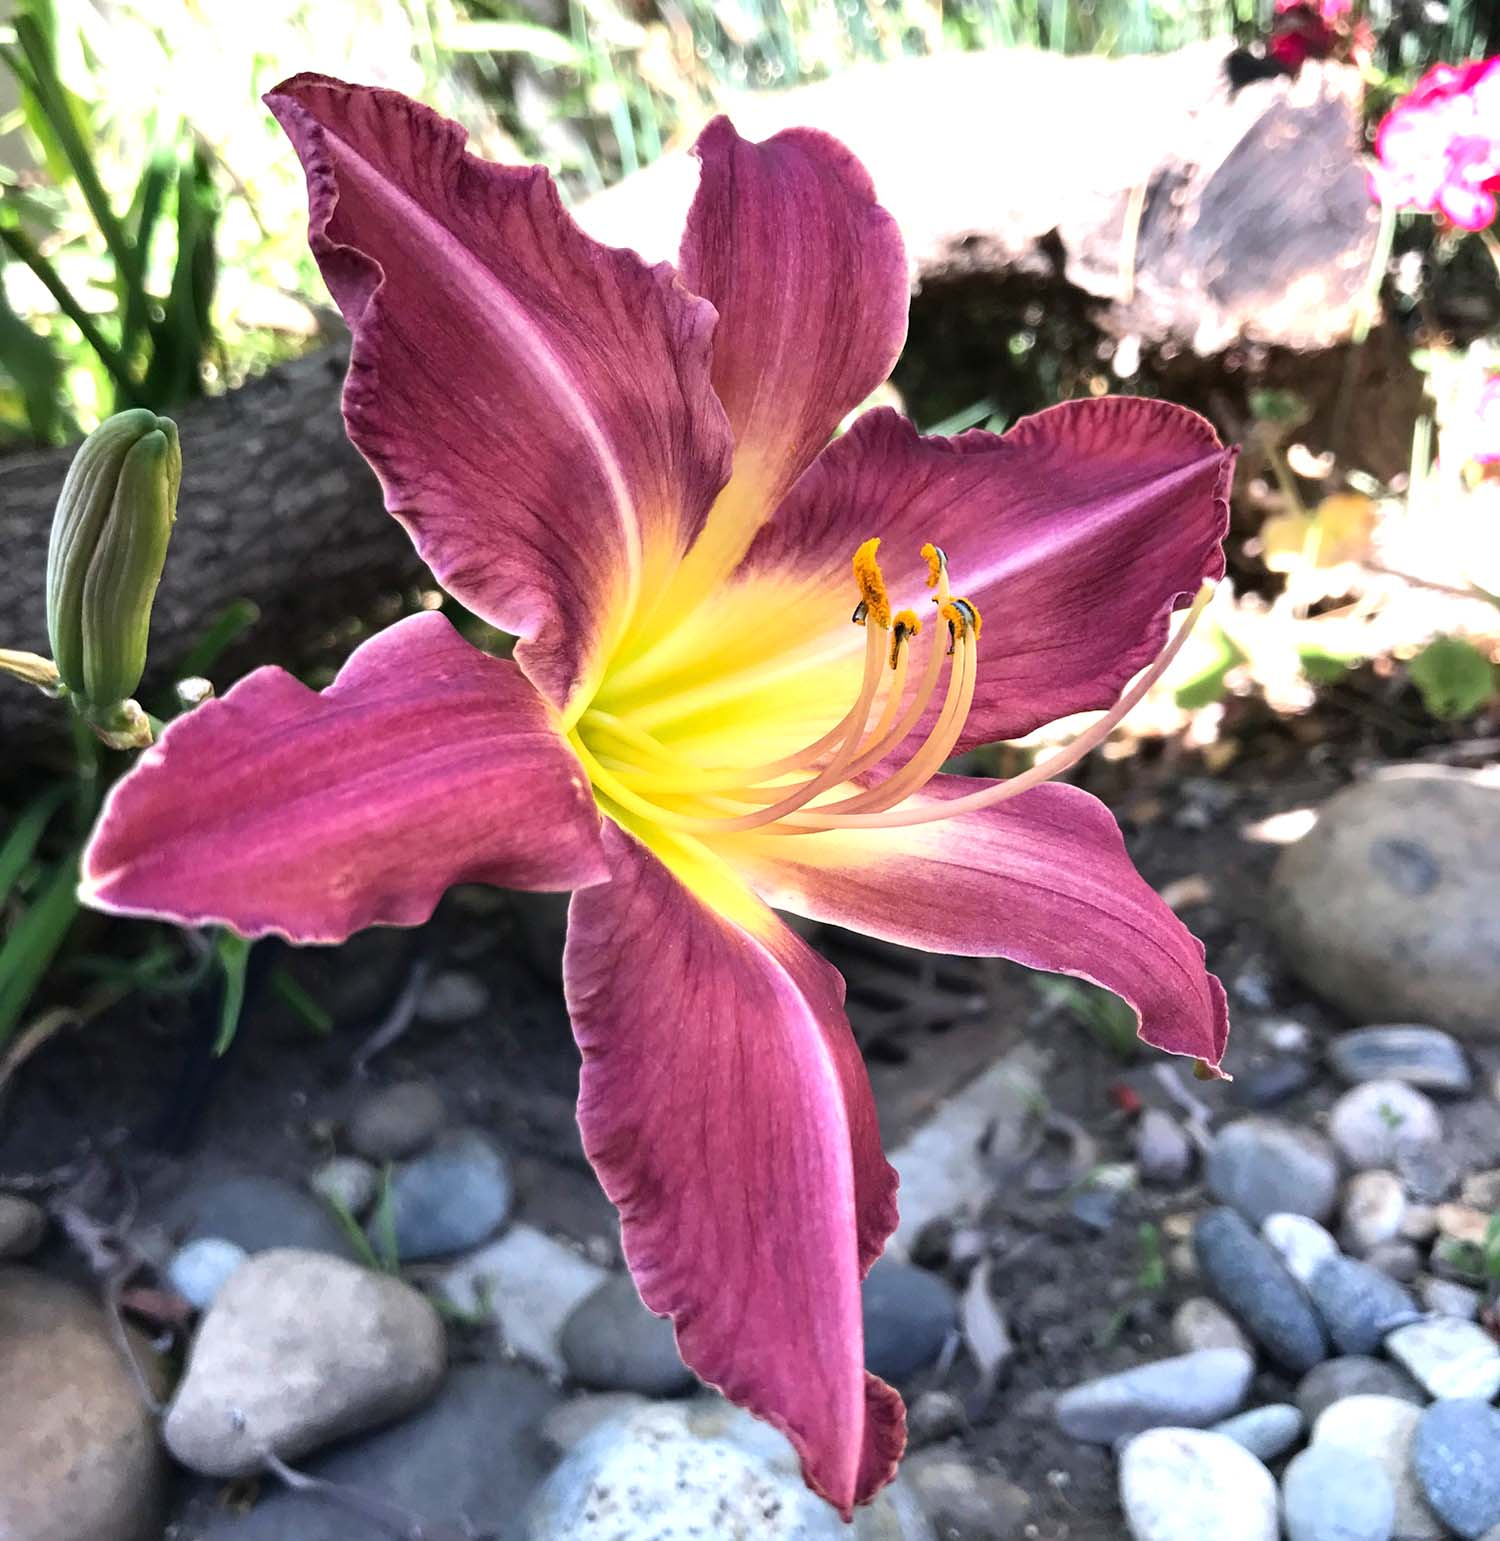 Day Lily gift in my front yard